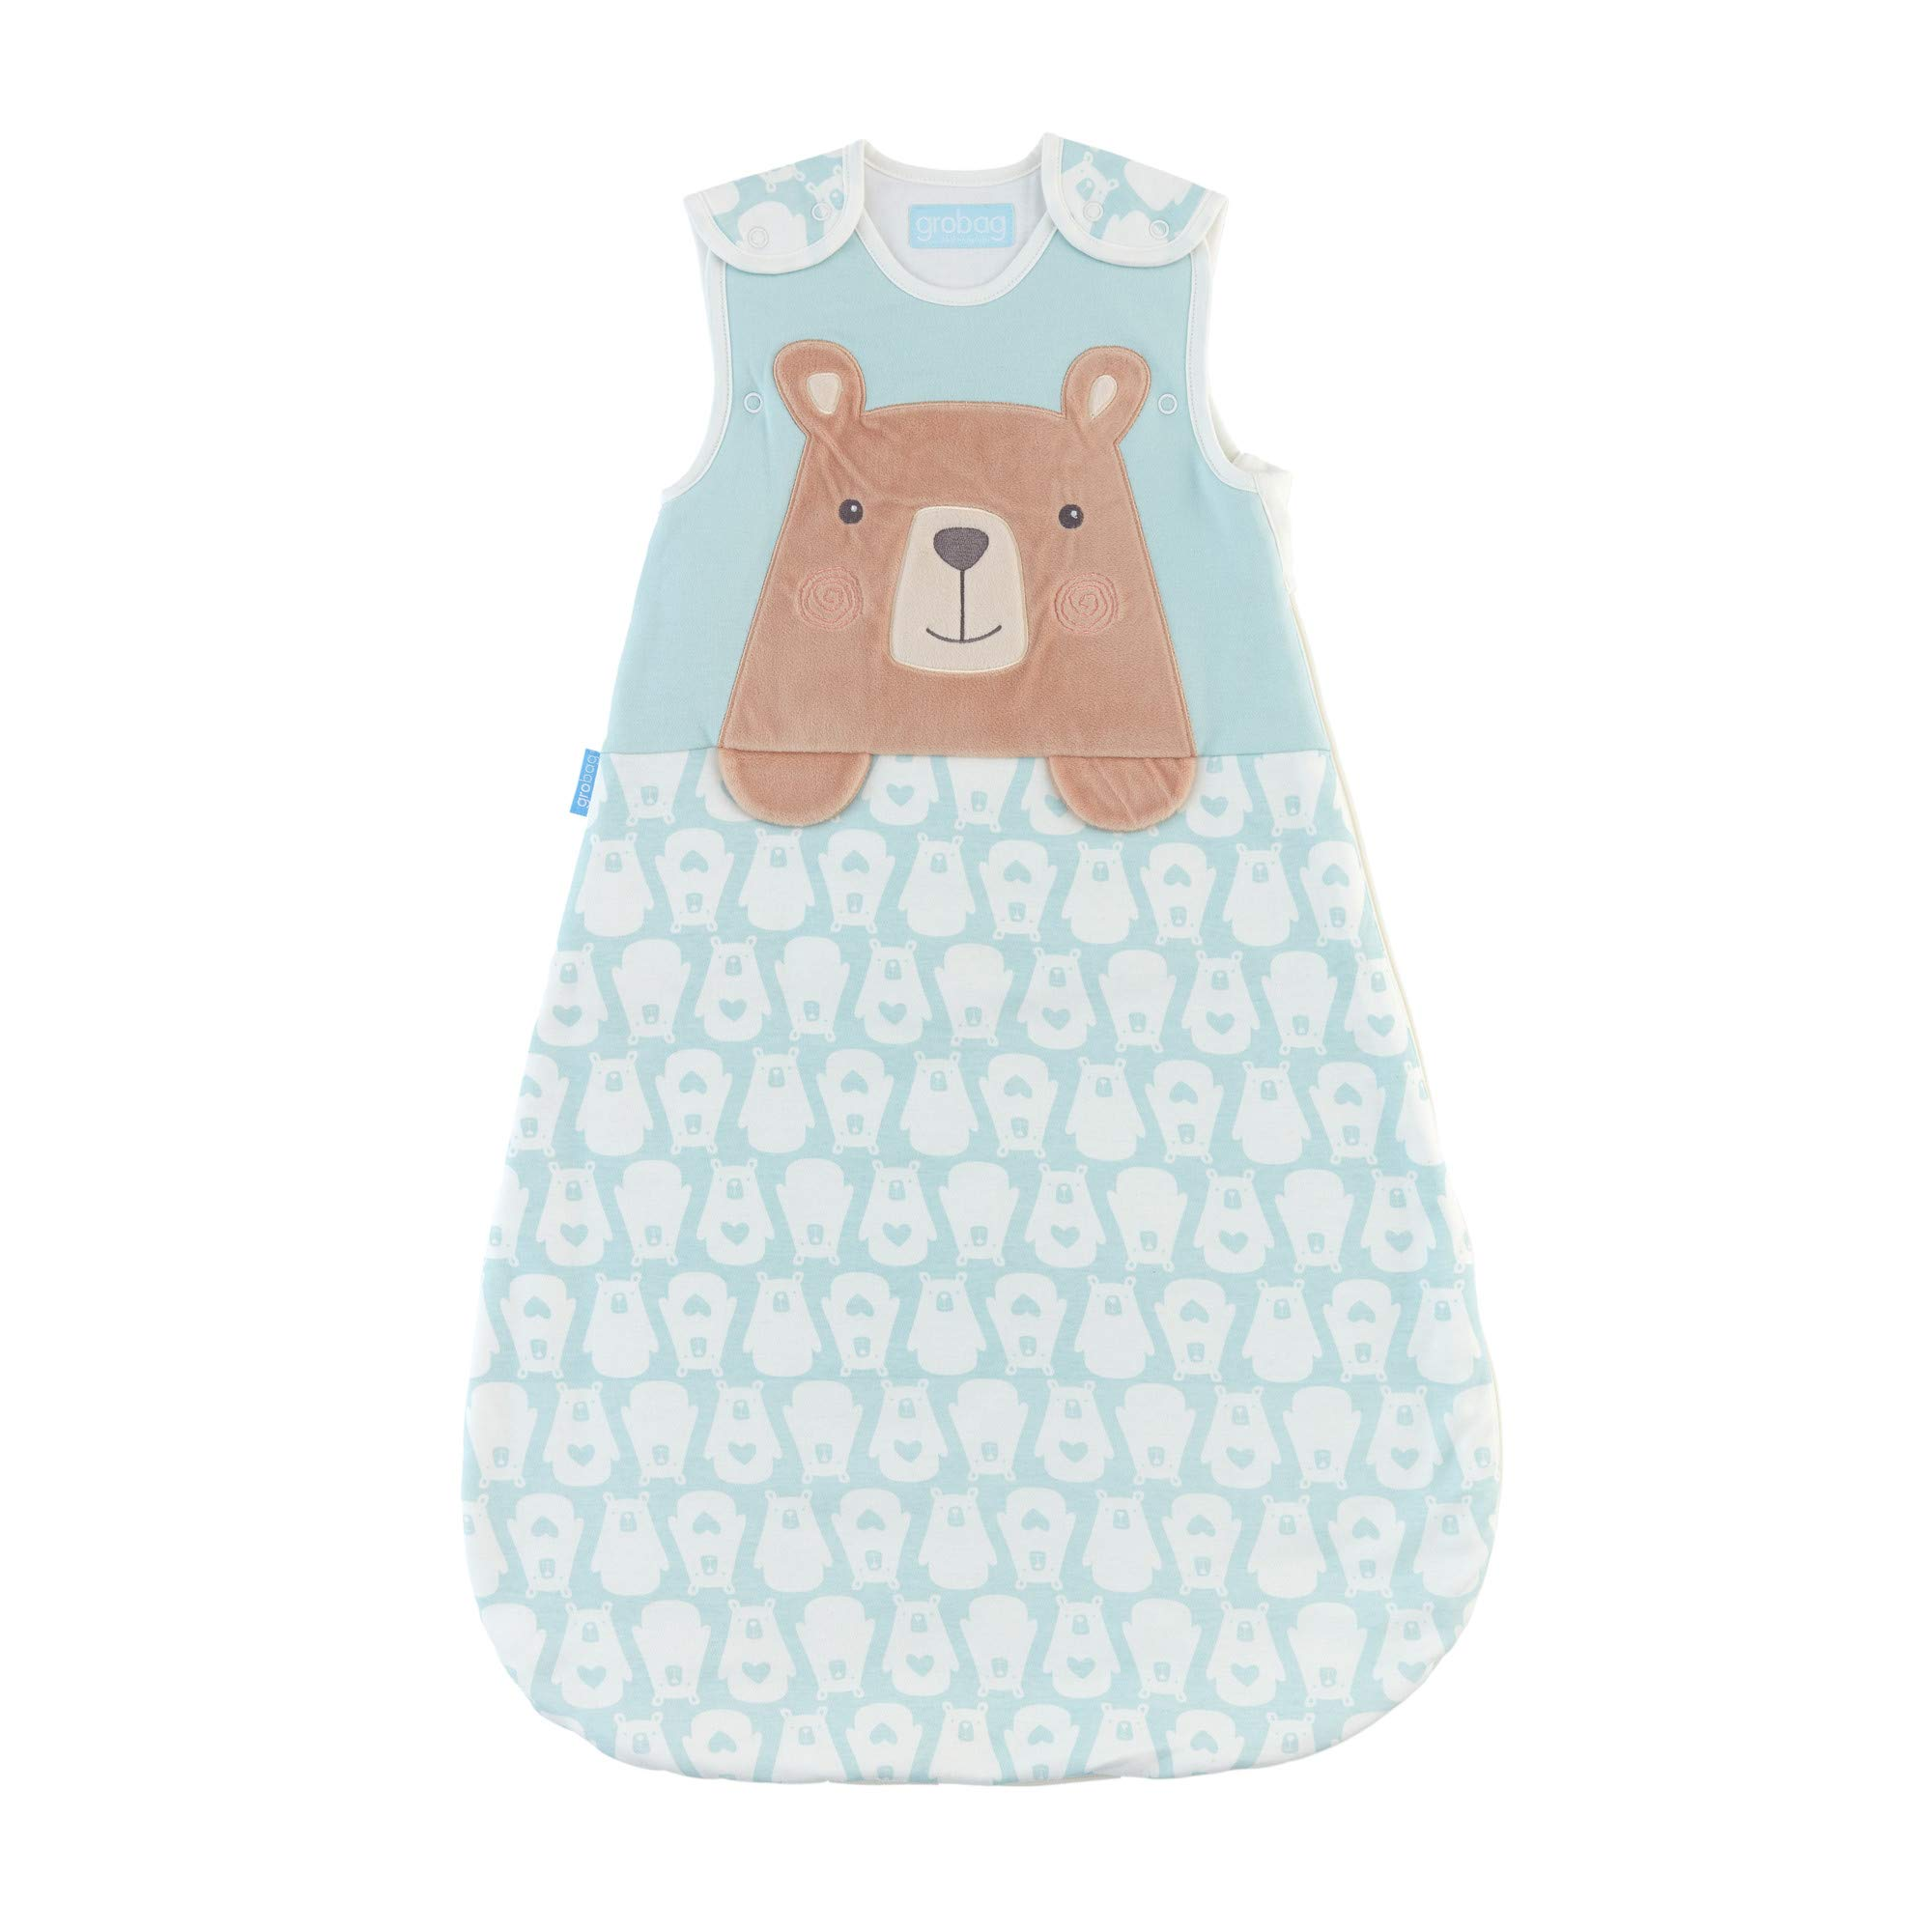 Tommee Tippee Grobag Newborn Baby Cotton Sleeping Bag, Sleeping Sack - Warm 2.5 Tog for 60-68 Degree F - Bennie The Bear - Small Size, 0-6 Months, Blue